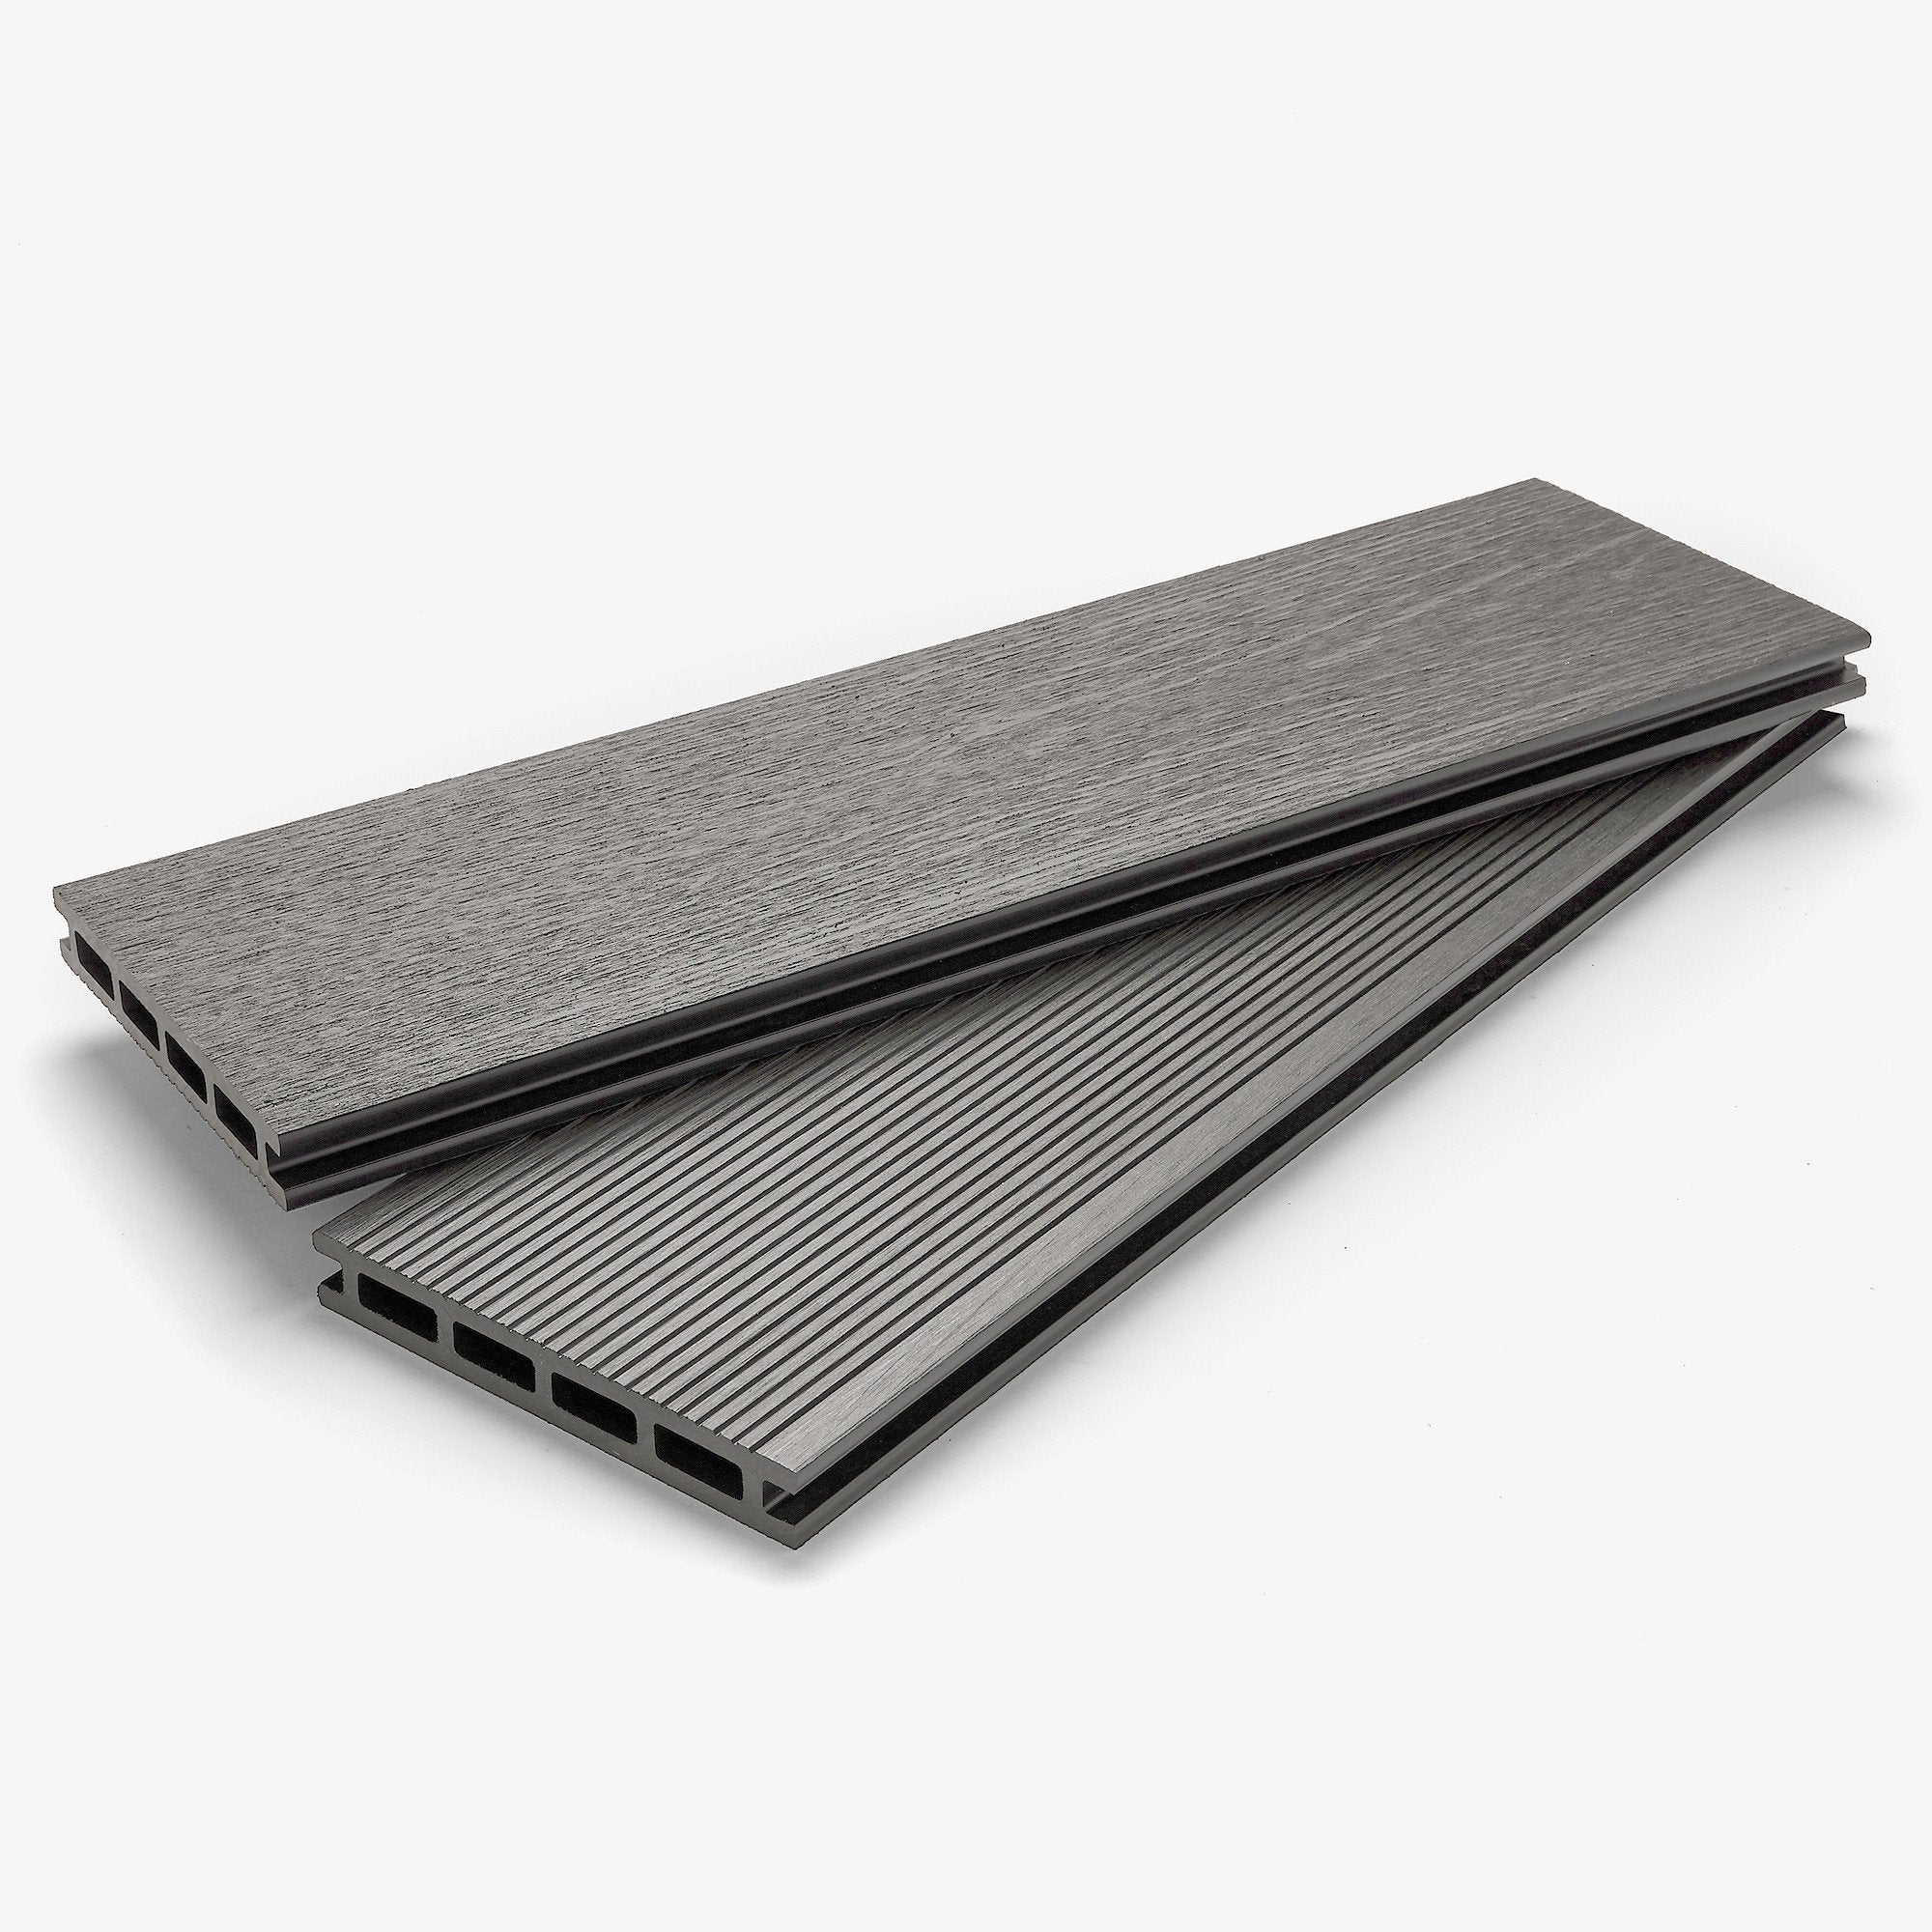 Composite Deck Board - Stone Grey | HYPERION Decking